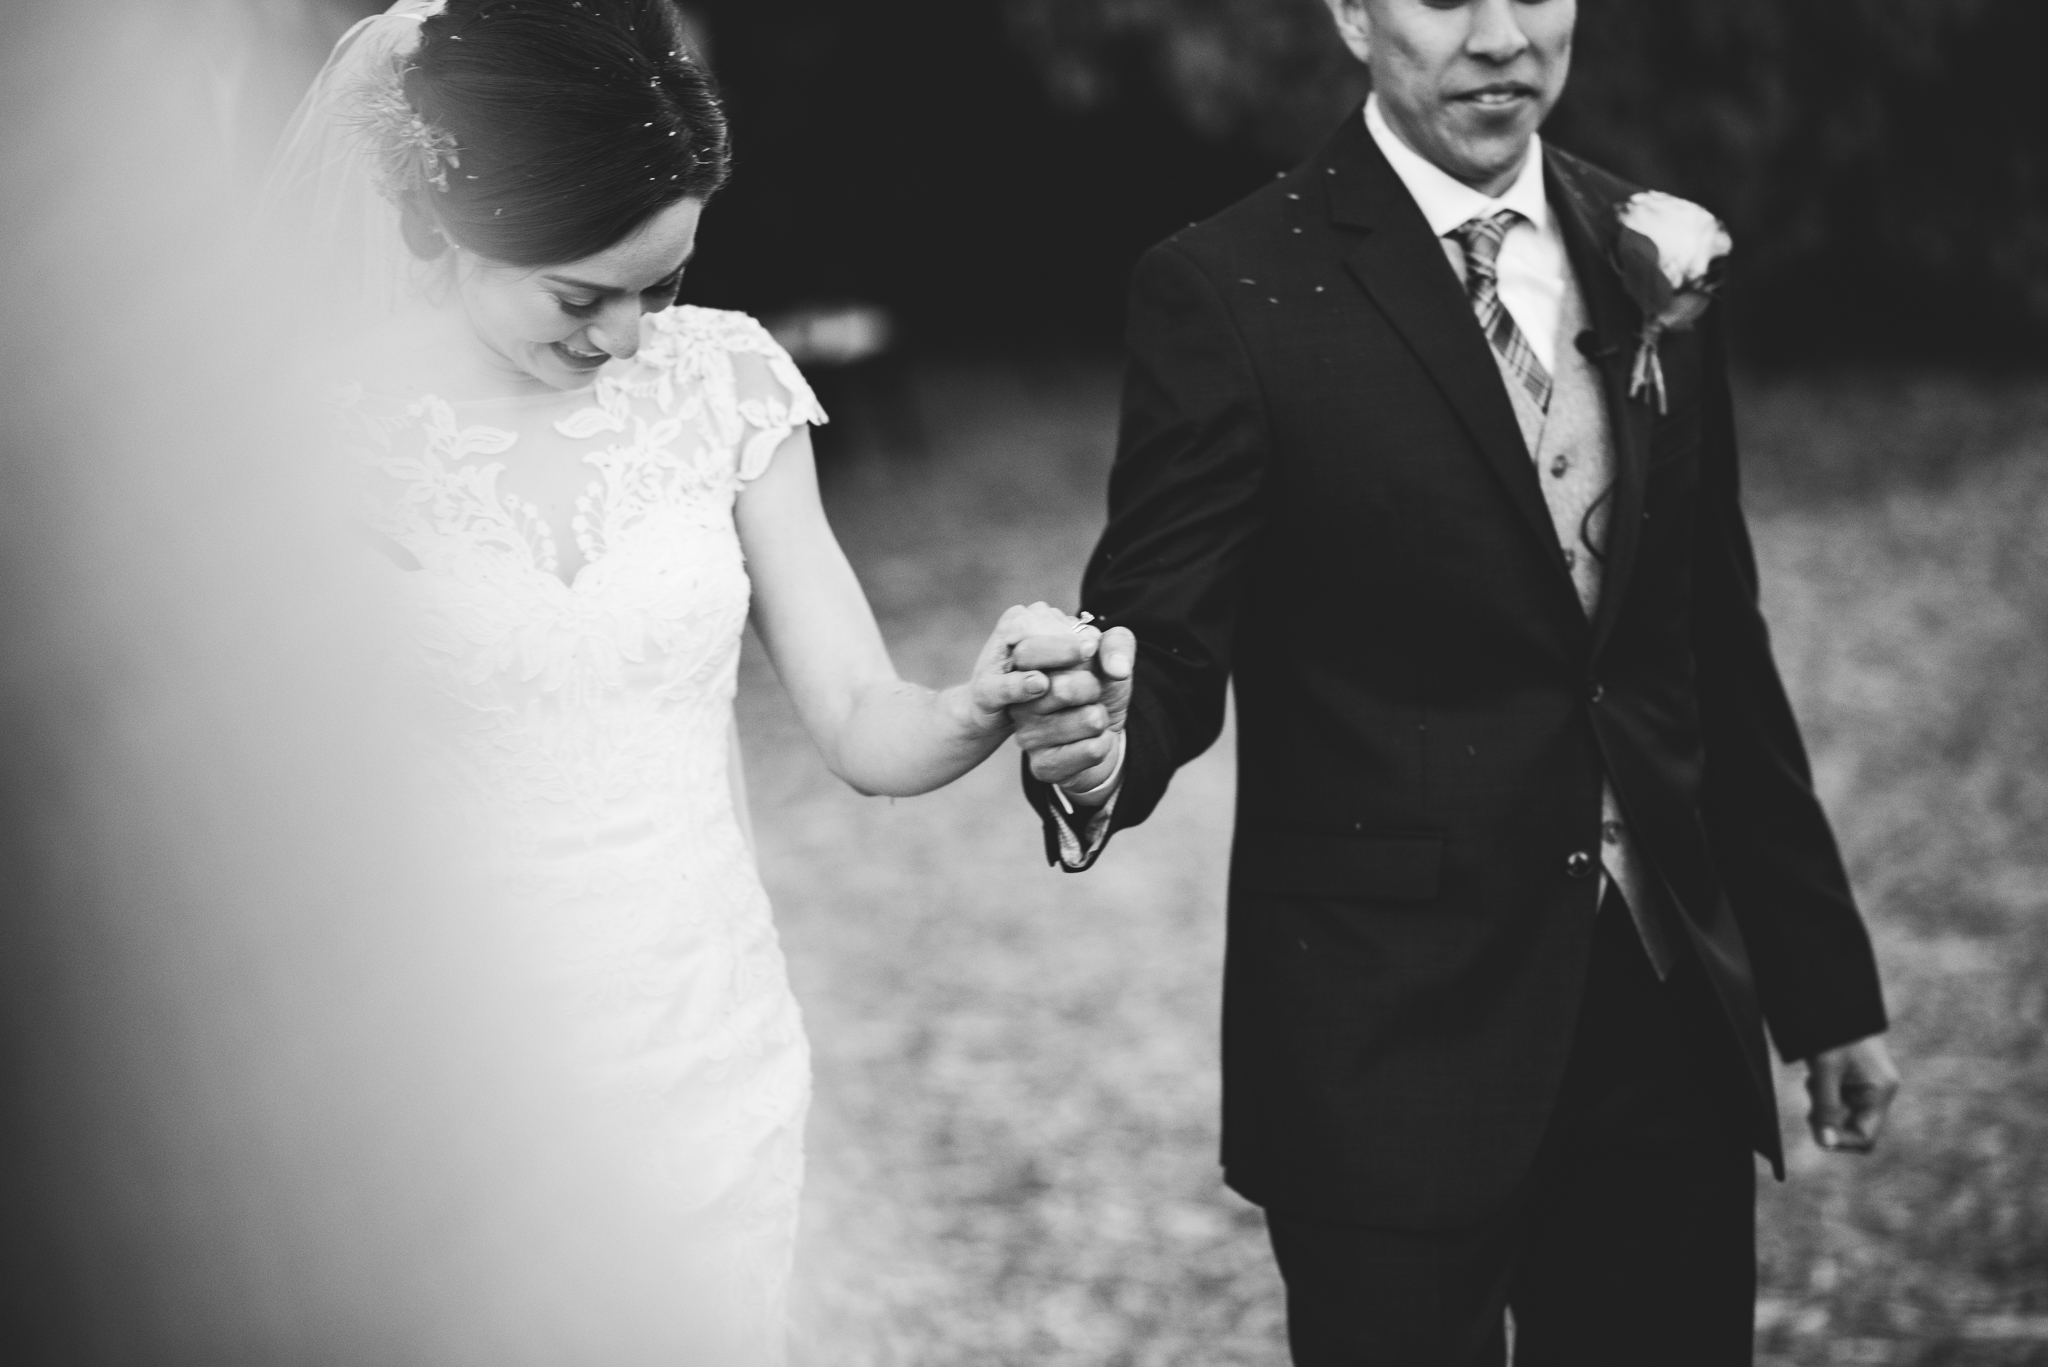 ©Isaiah-&-Taylor-Photography---Highland-Springs-Resort-Wedding,-Cherry-Valley-112.jpg